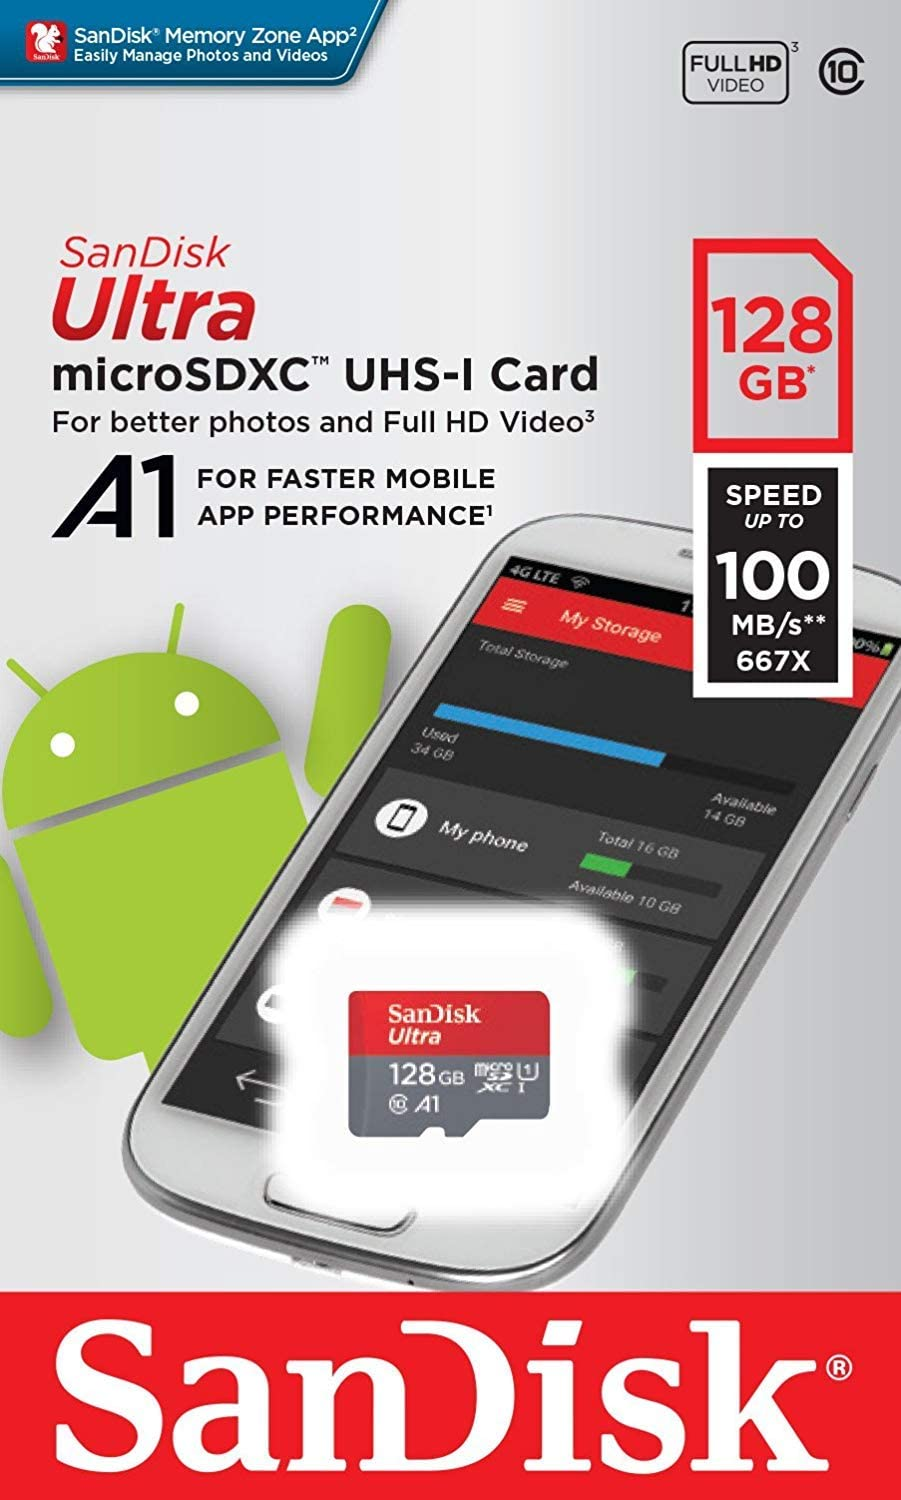 SanDisk Ultra 128GB MicroSDXC Verified for Oppo N1 Mini by SanFlash 100MBs A1 U1 C10 Works with SanDisk